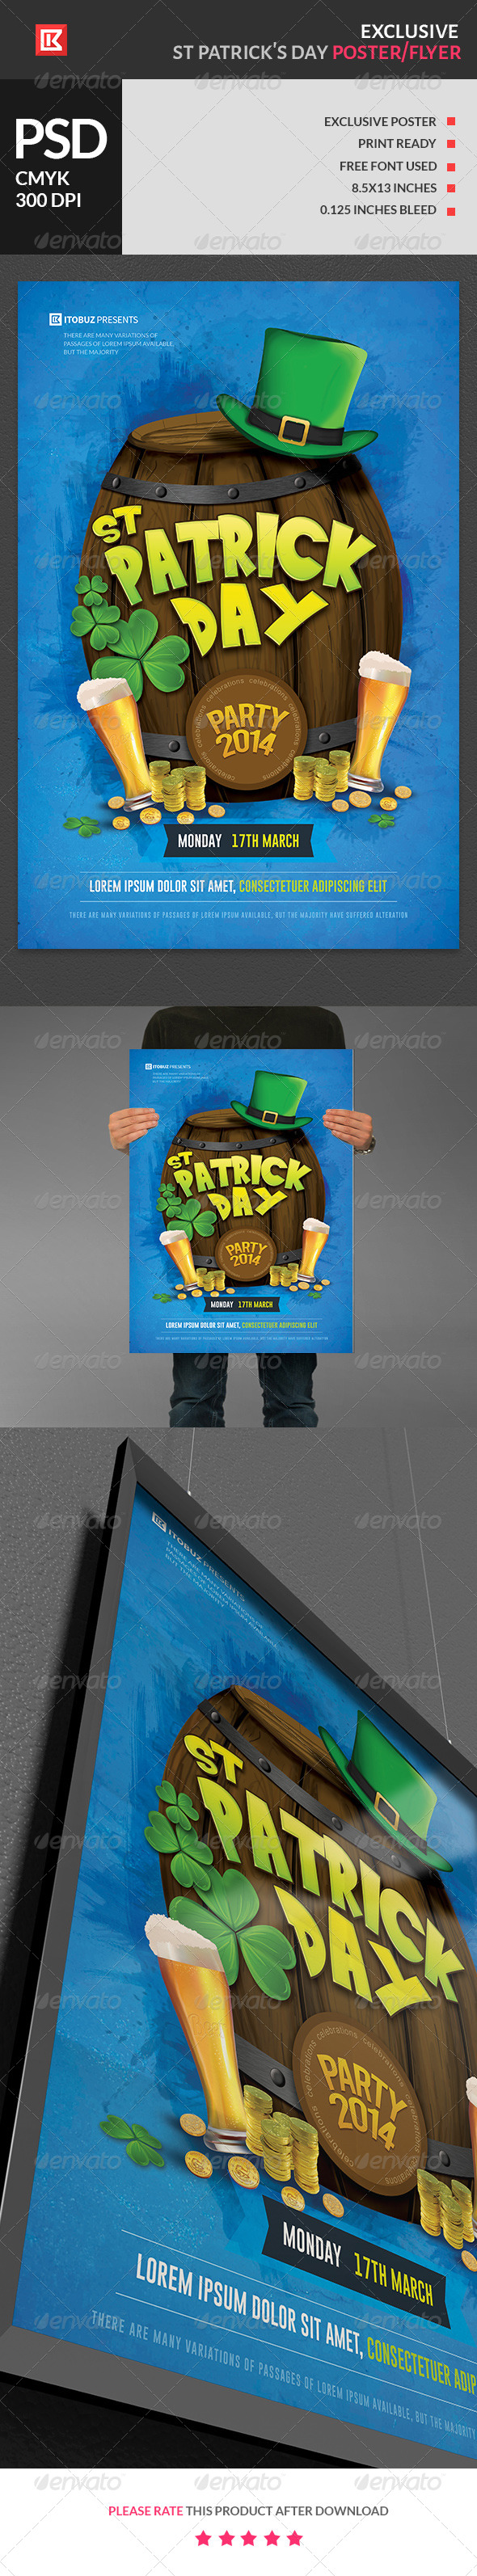 Exclusive St Patrick's Day Poster - Holidays Events